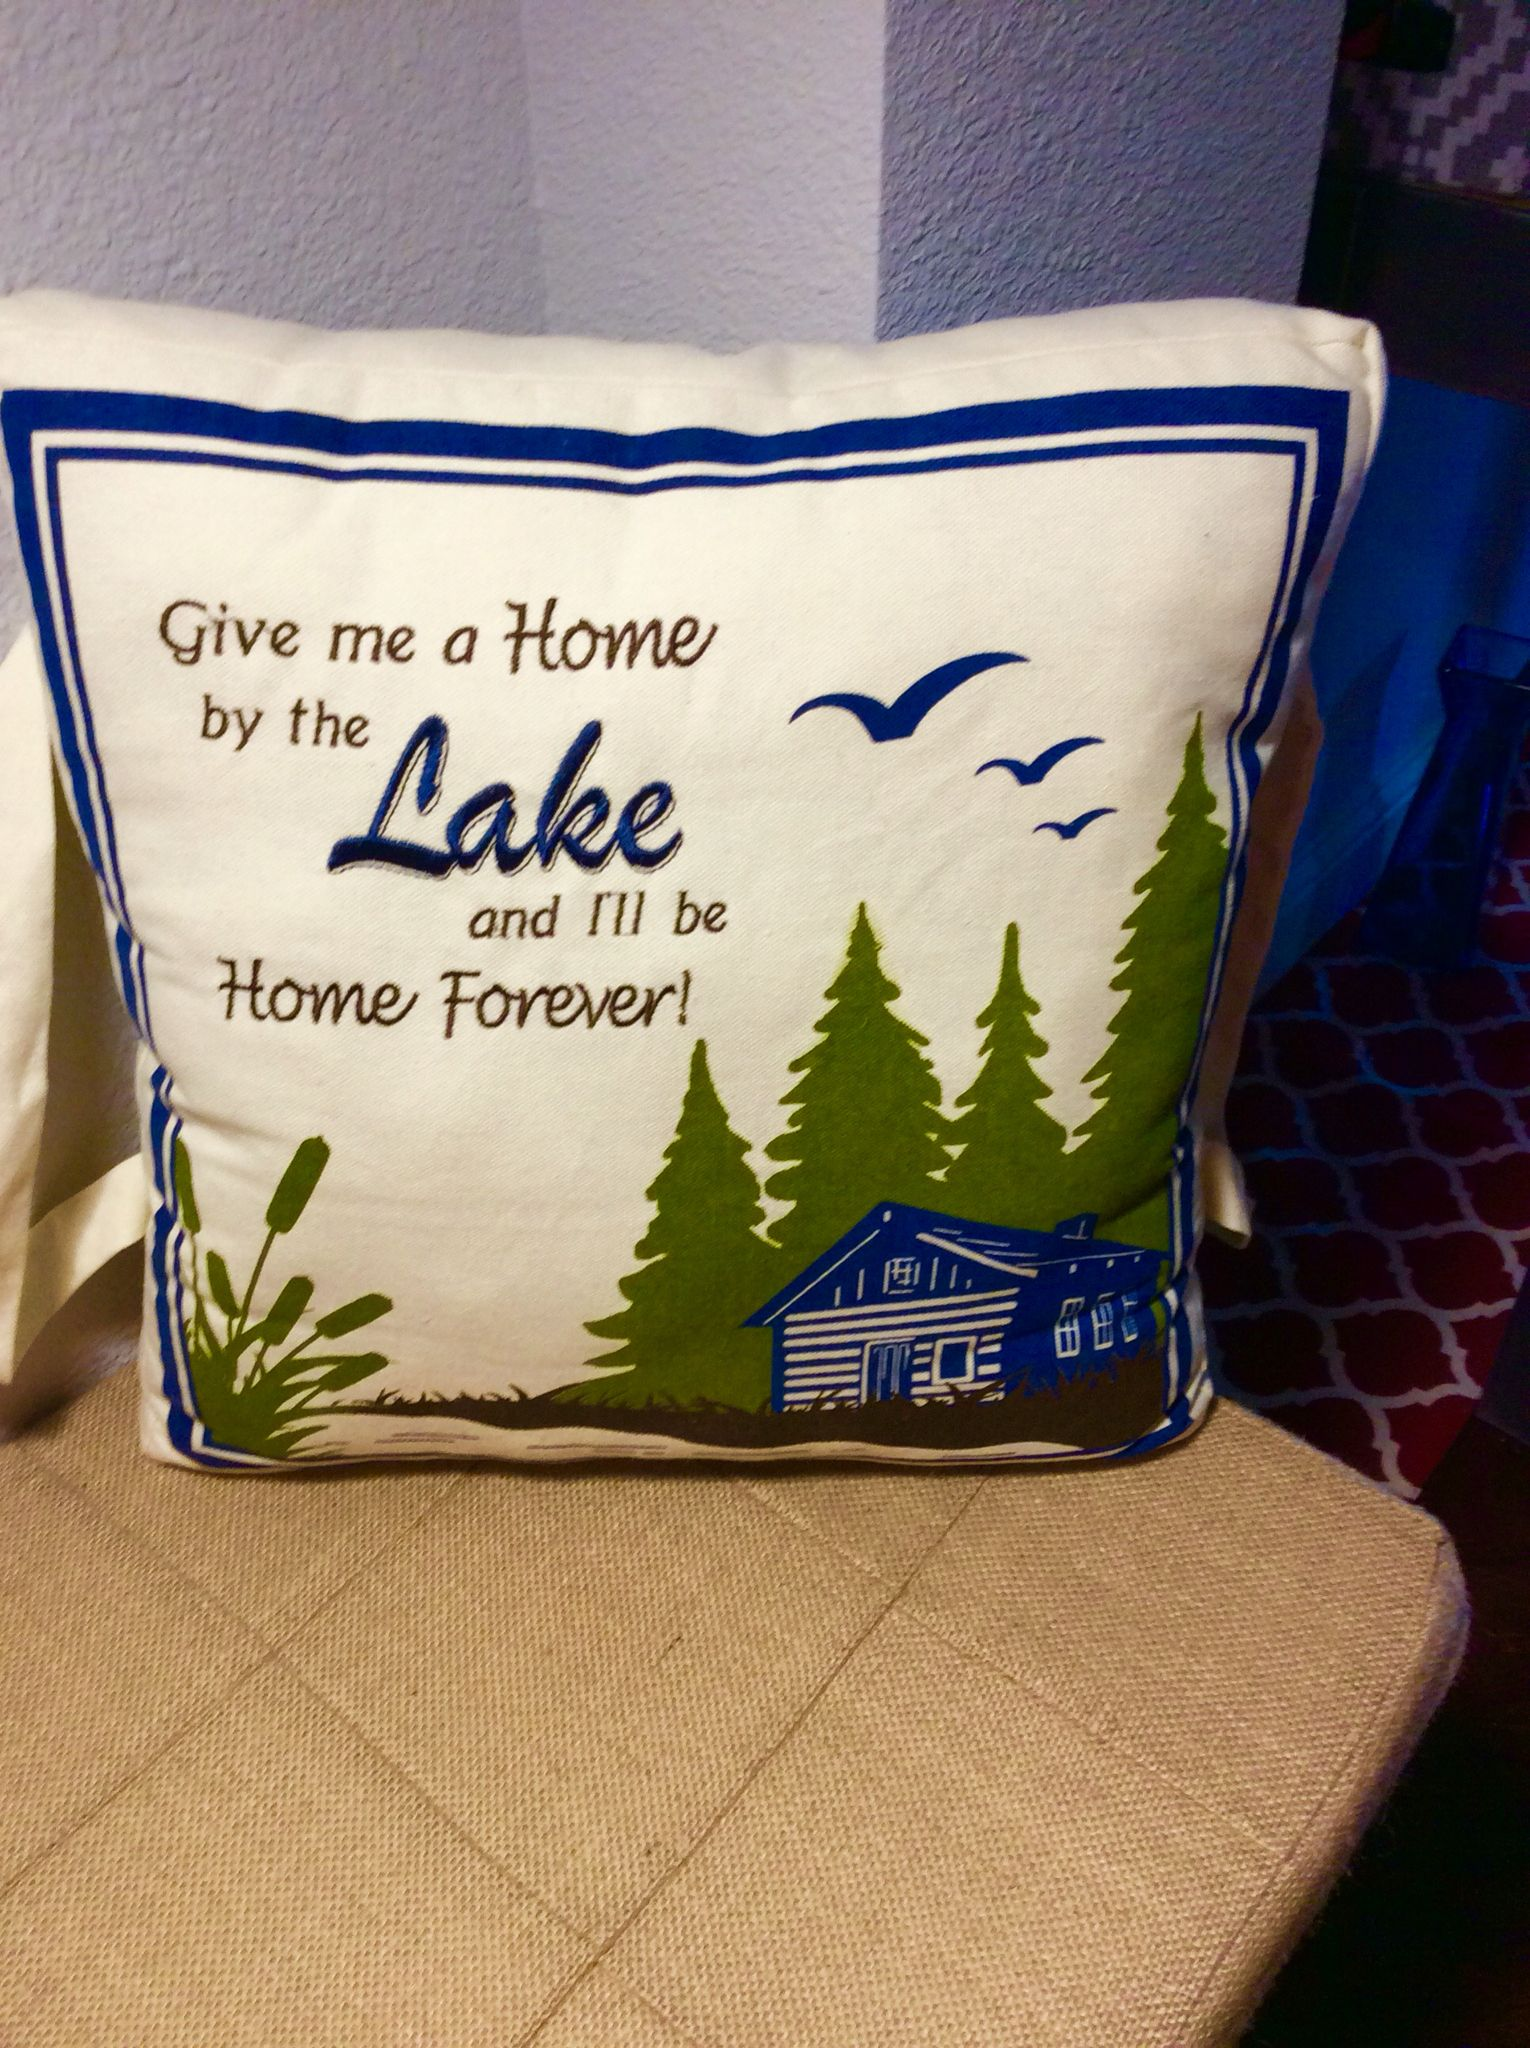 YAAASSS‼️ Not only does Cracker Barrel have great food, but also great pillows‼️Entryway find👌🏻 #LandinLivin💕💙💙